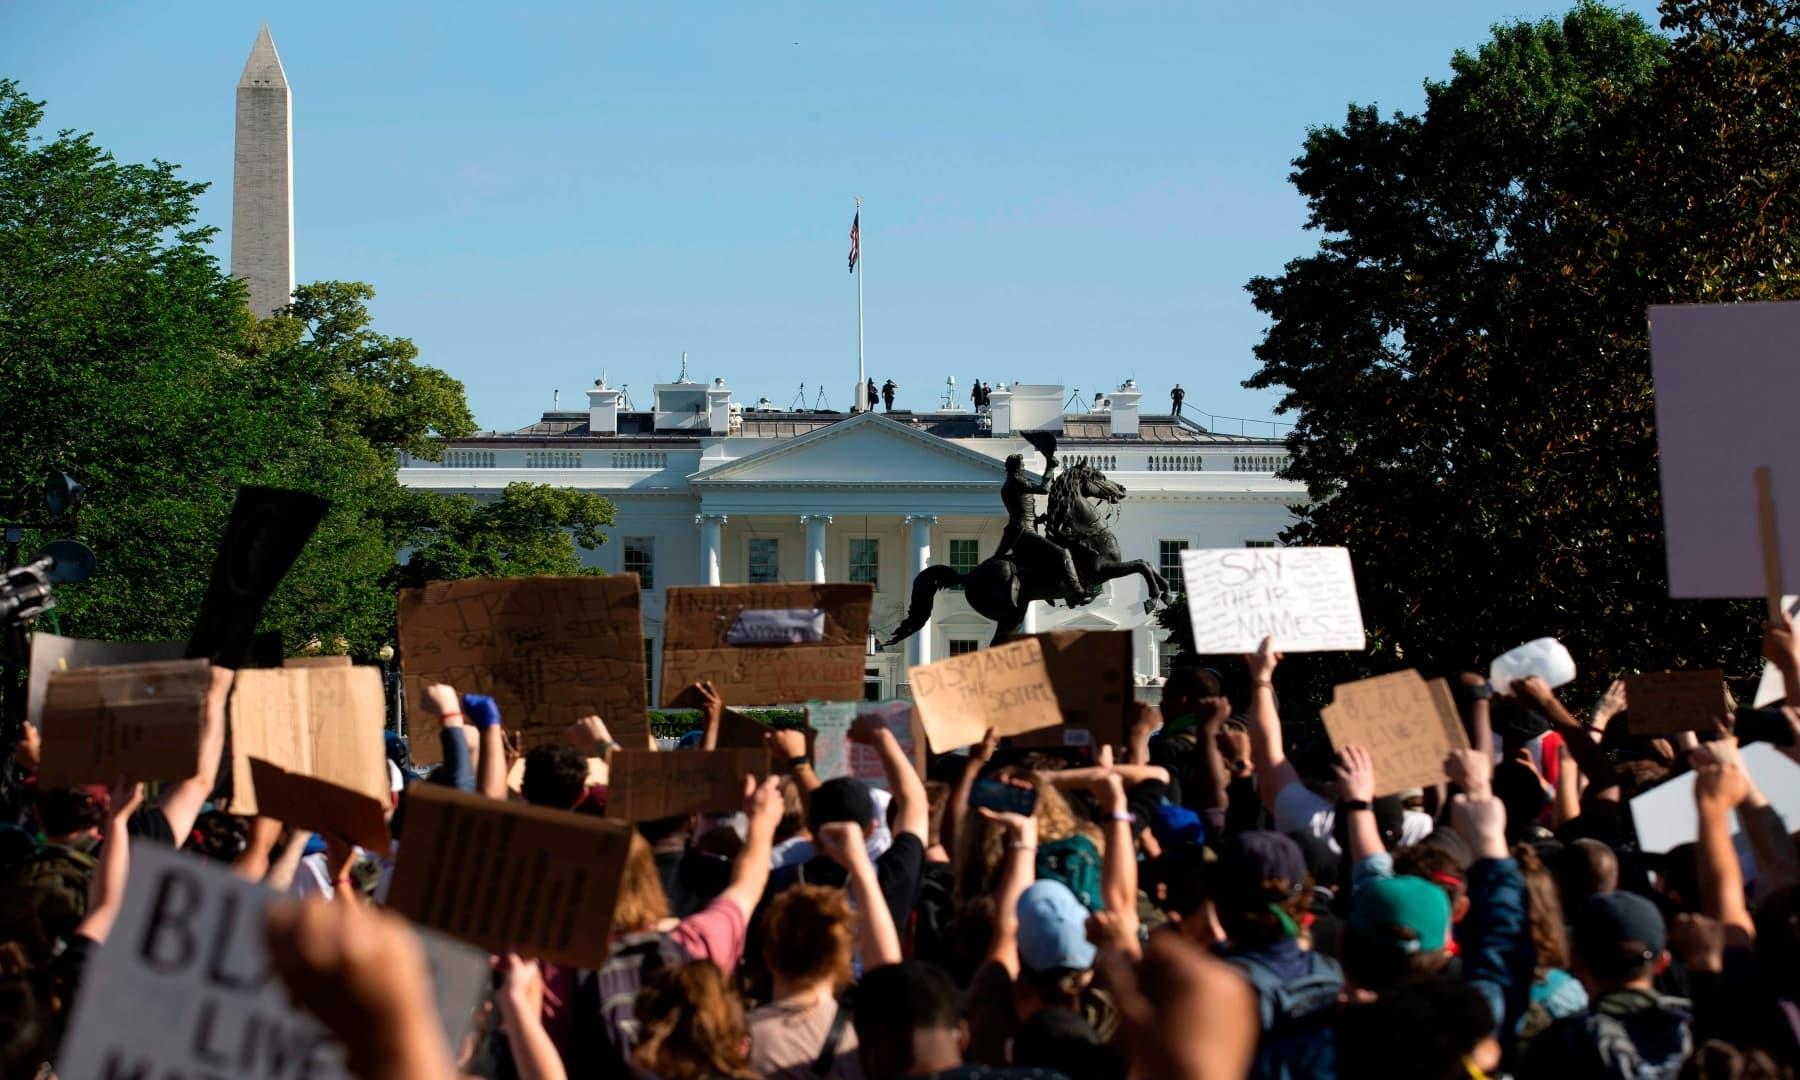 Demonstrators hold up placards protest outside of the White House, over the death of George Floyd, in Washington DC on June 1. — AFP